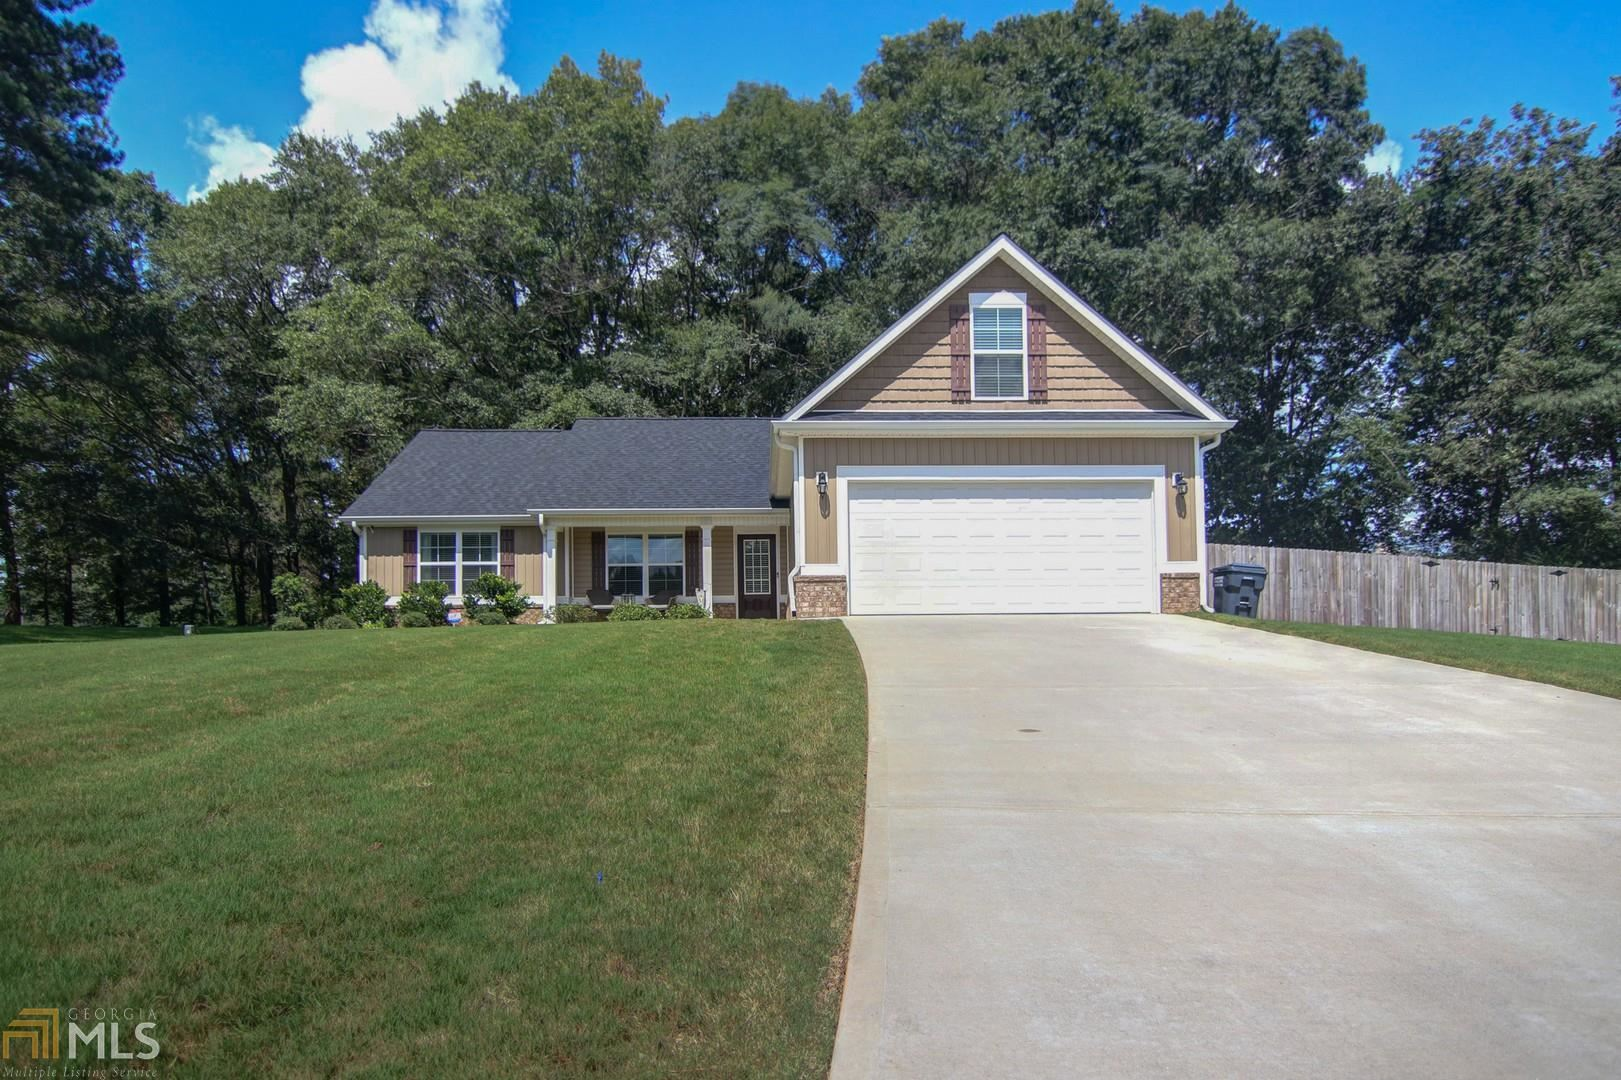 215 Chimney Ridge Ln, Covington, GA 30014 - #: 8845766